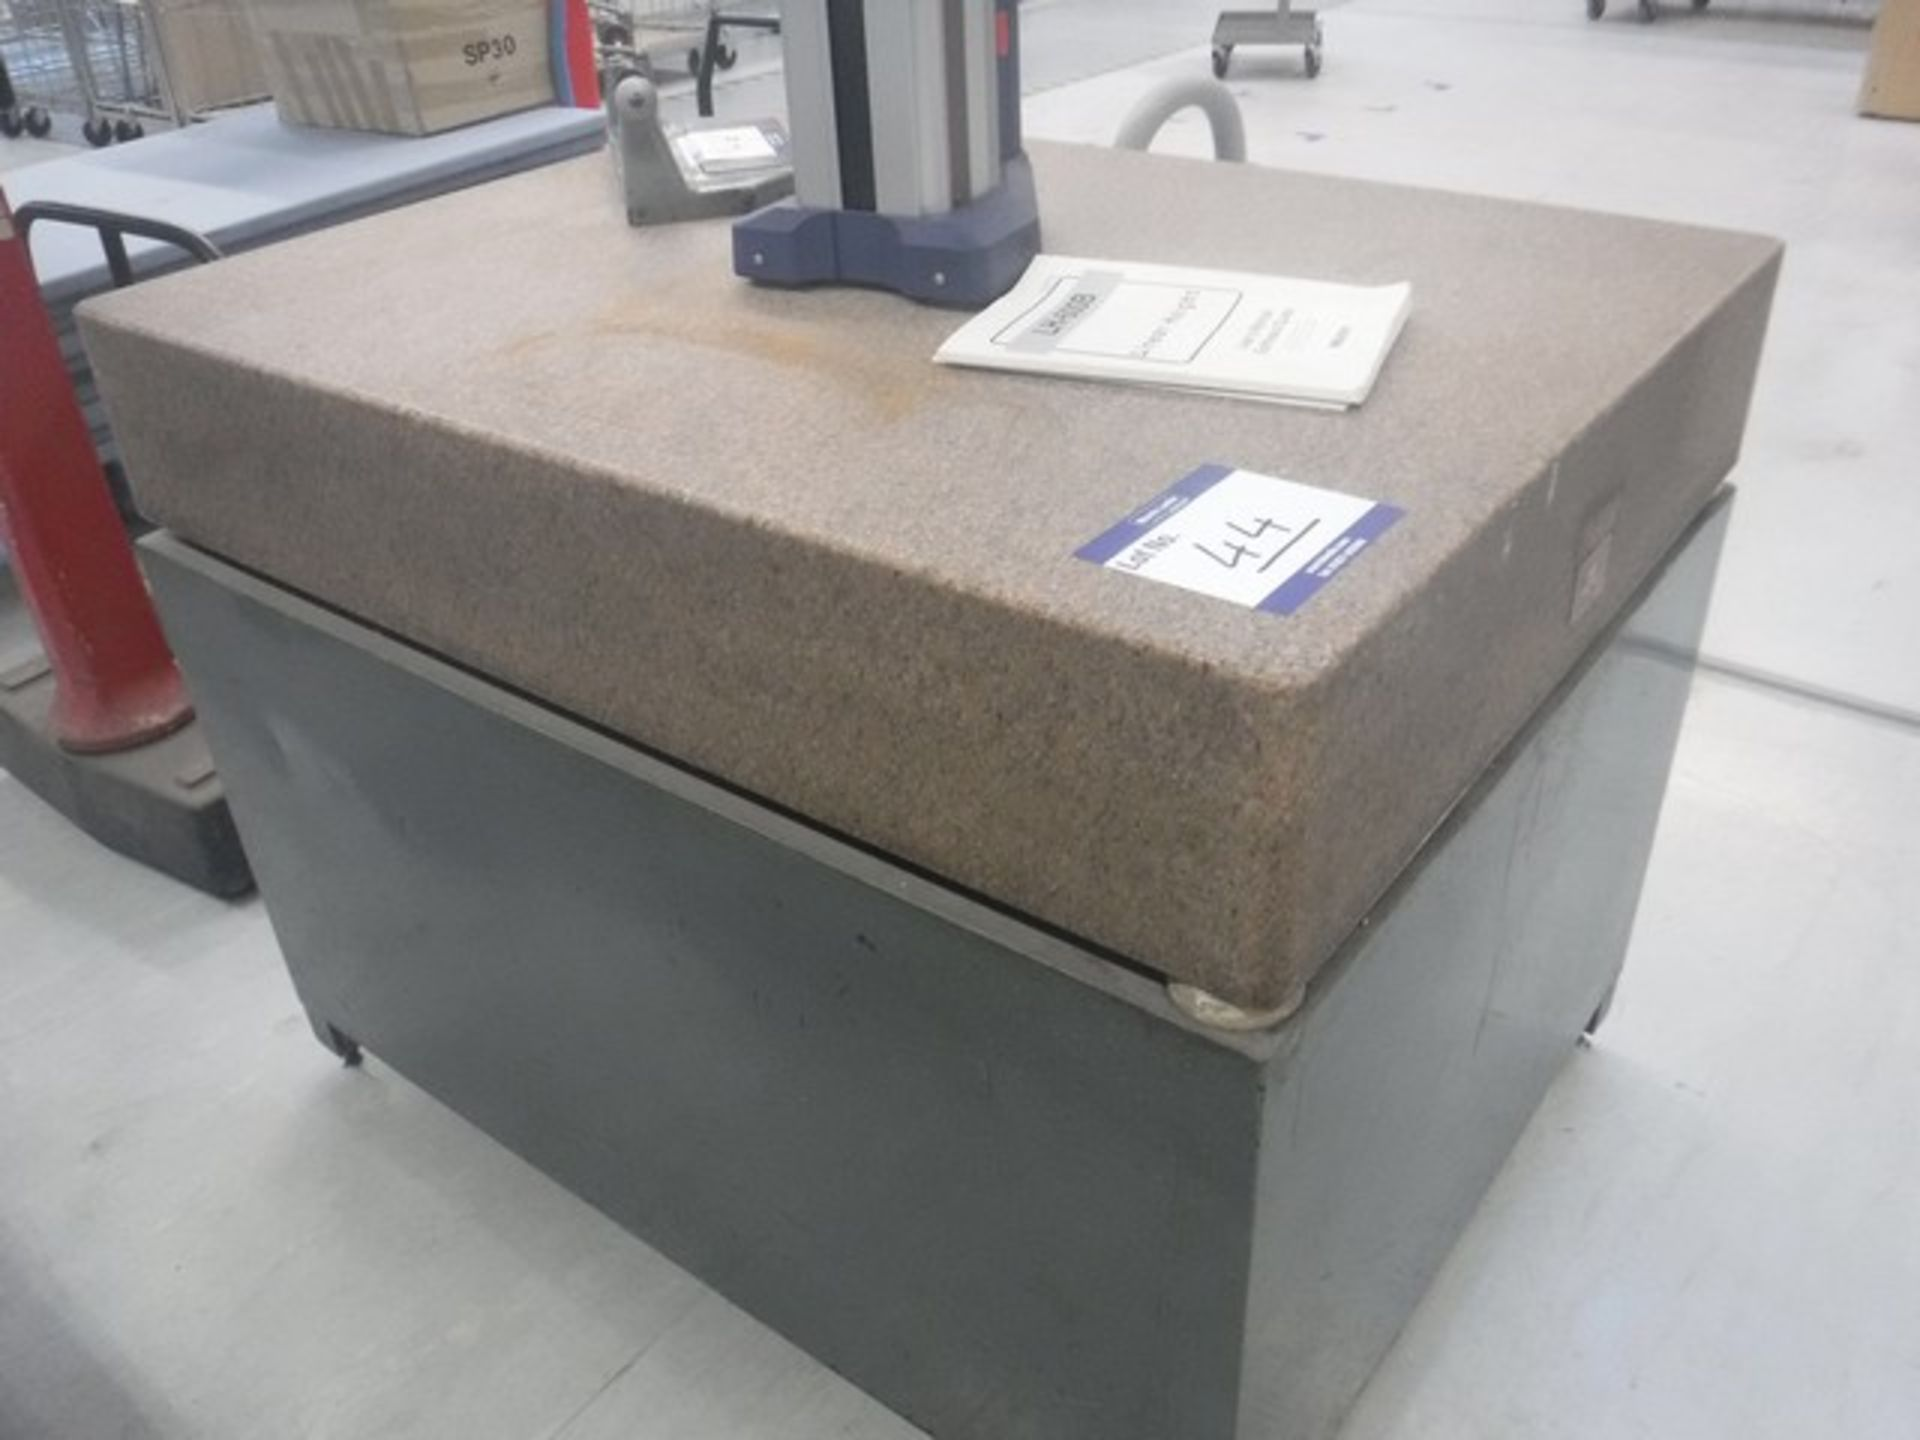 Lot 1044 - Herman solid marble surface plate and stand 4ft x 3ft